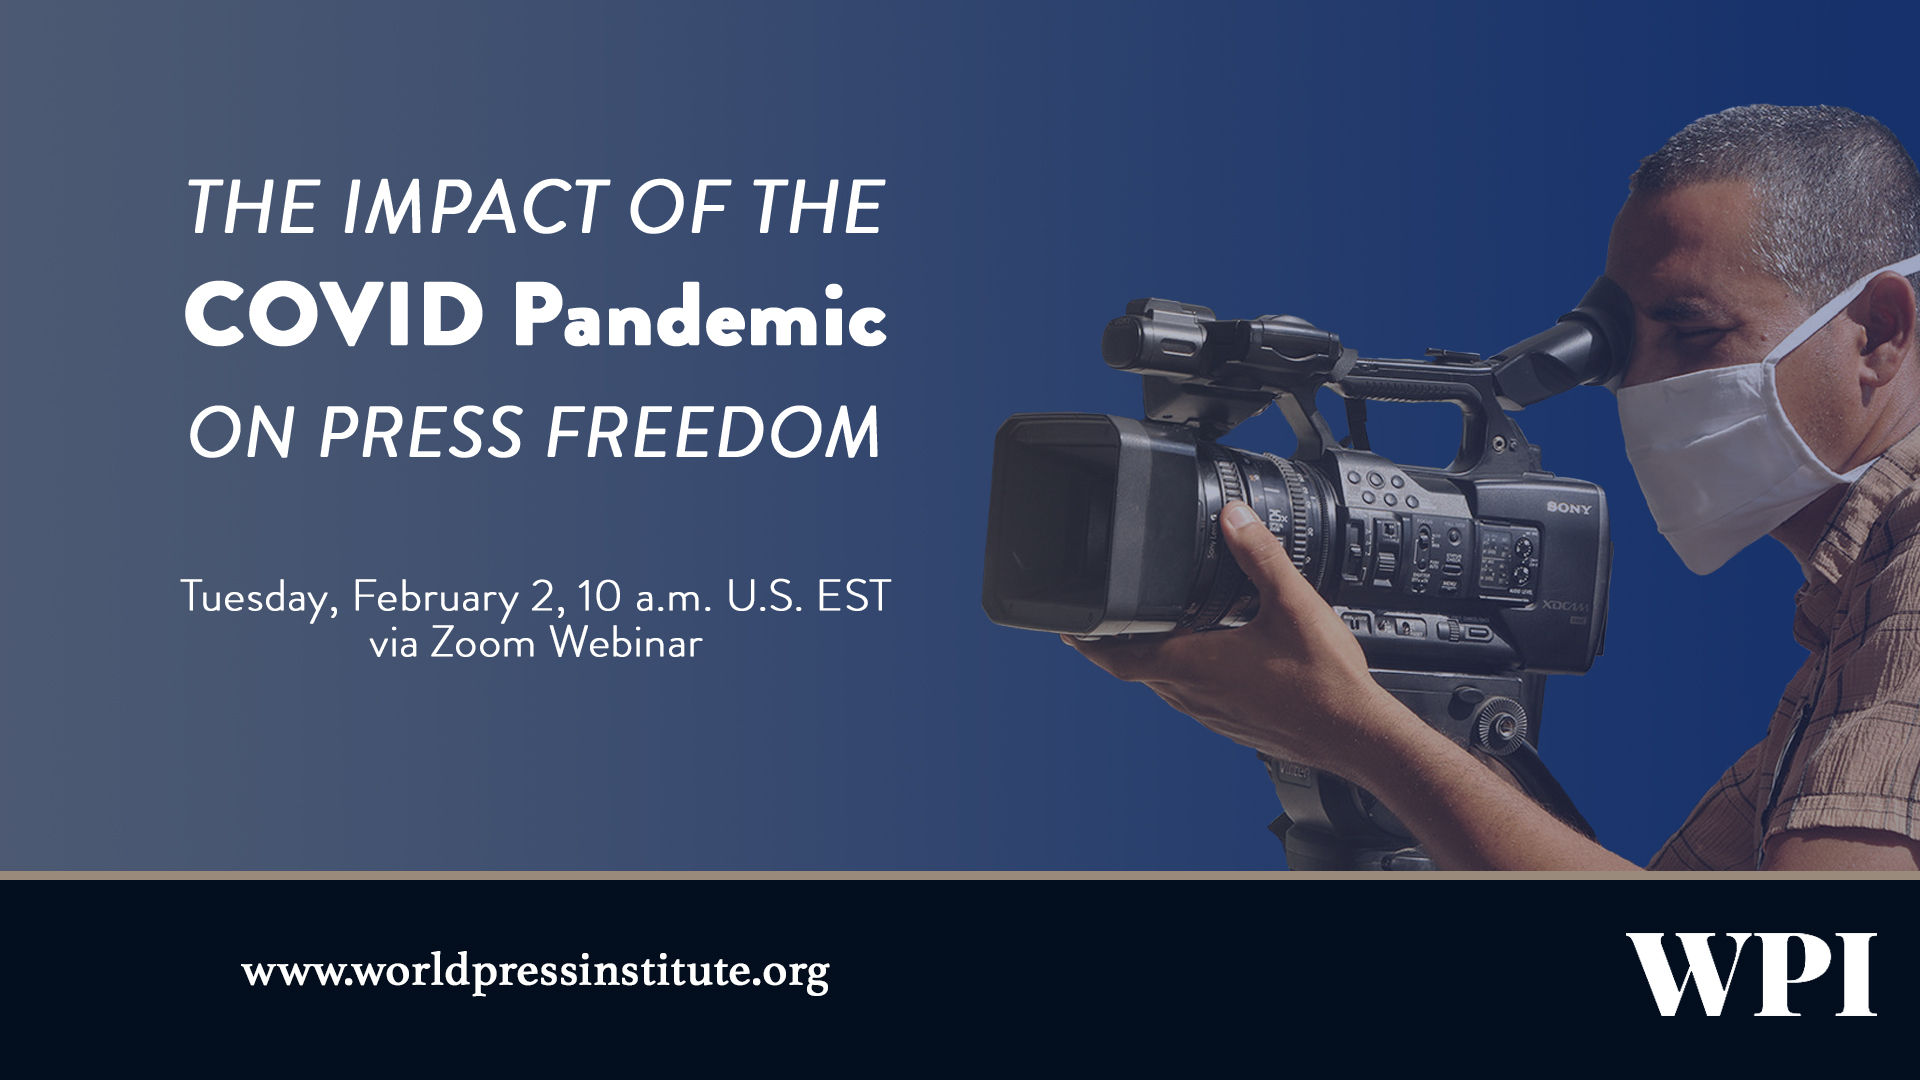 Impact of COVID Pandemic on Press Freedom Webinar